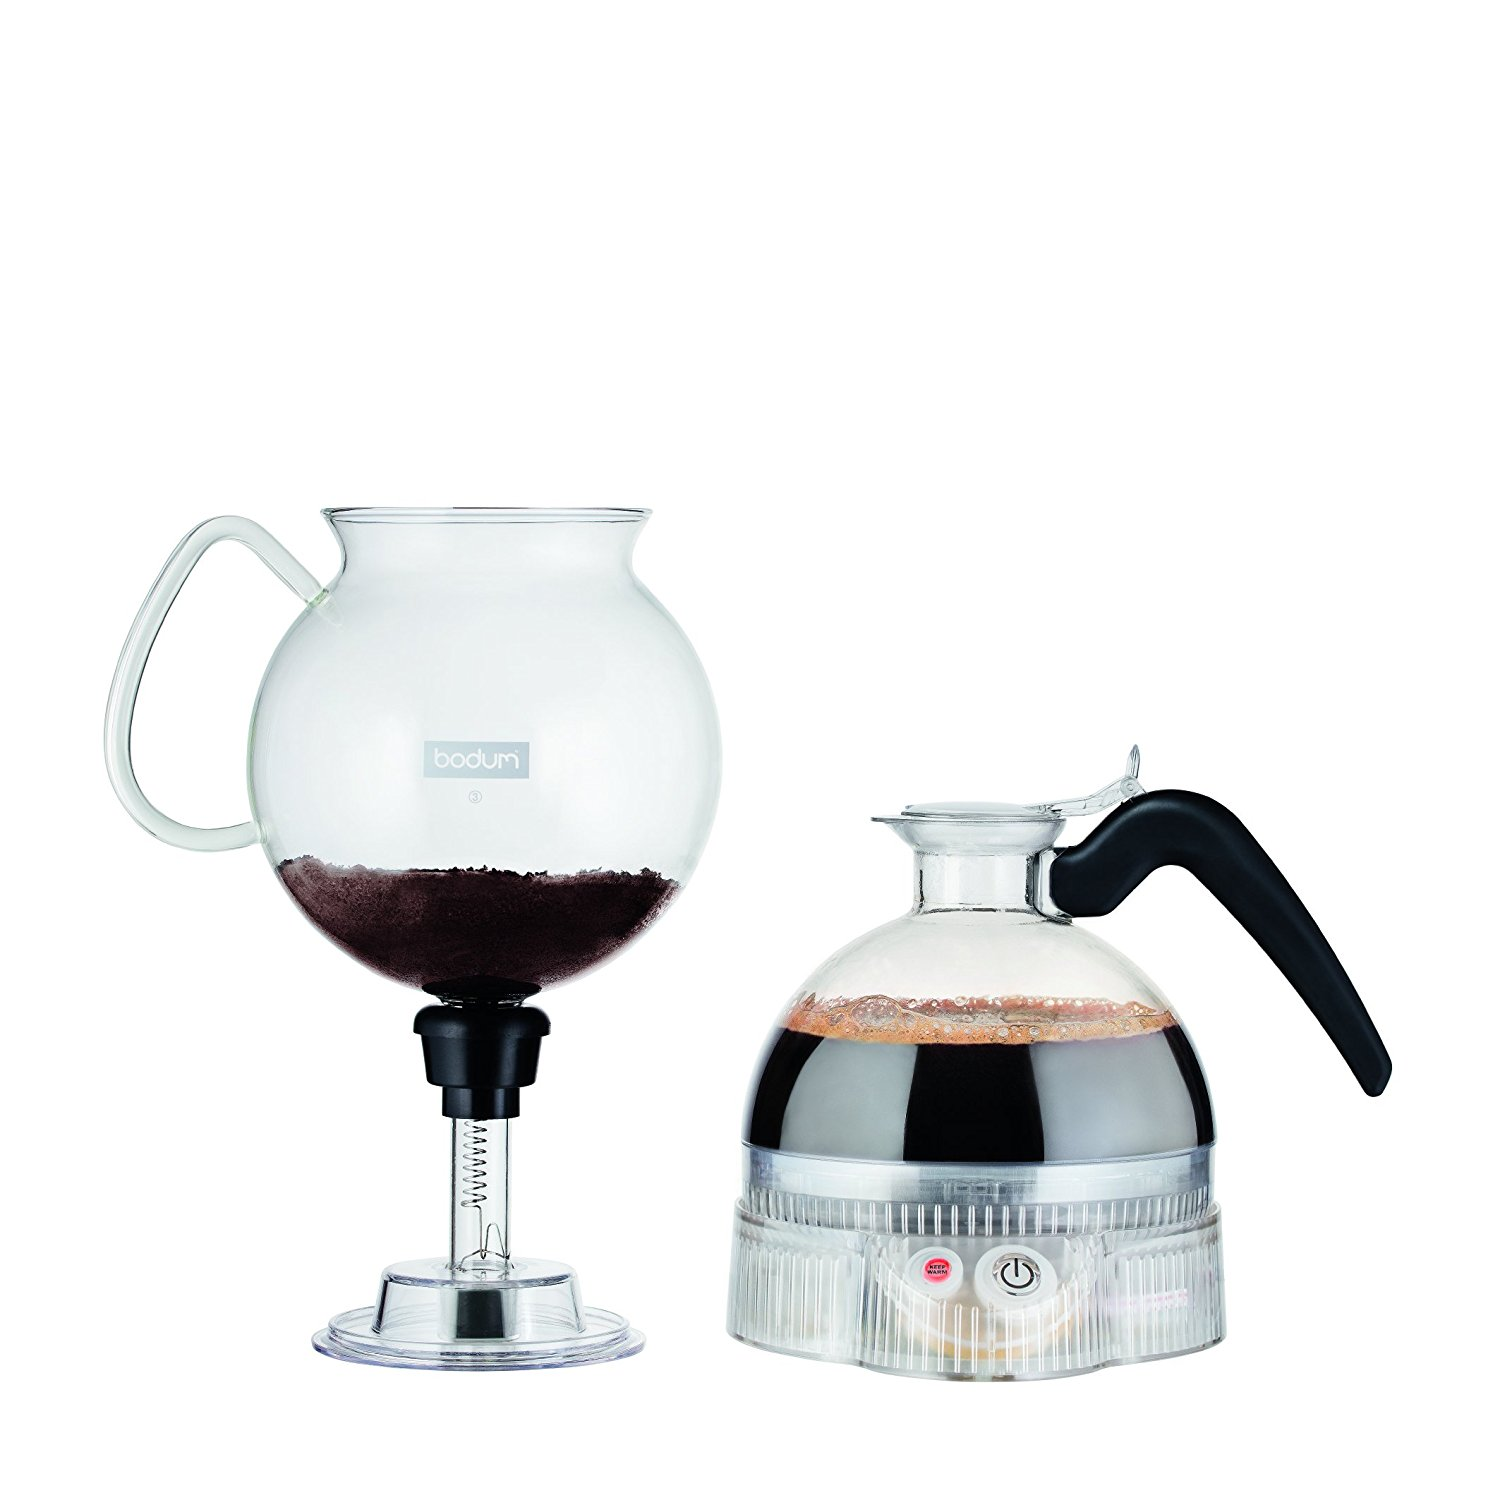 Vacuum Coffee Maker In Spanish : Bodum ePEBO Coffee Maker, Electric Vacuum Coffee Maker4 - BuyMoreCoffee.com